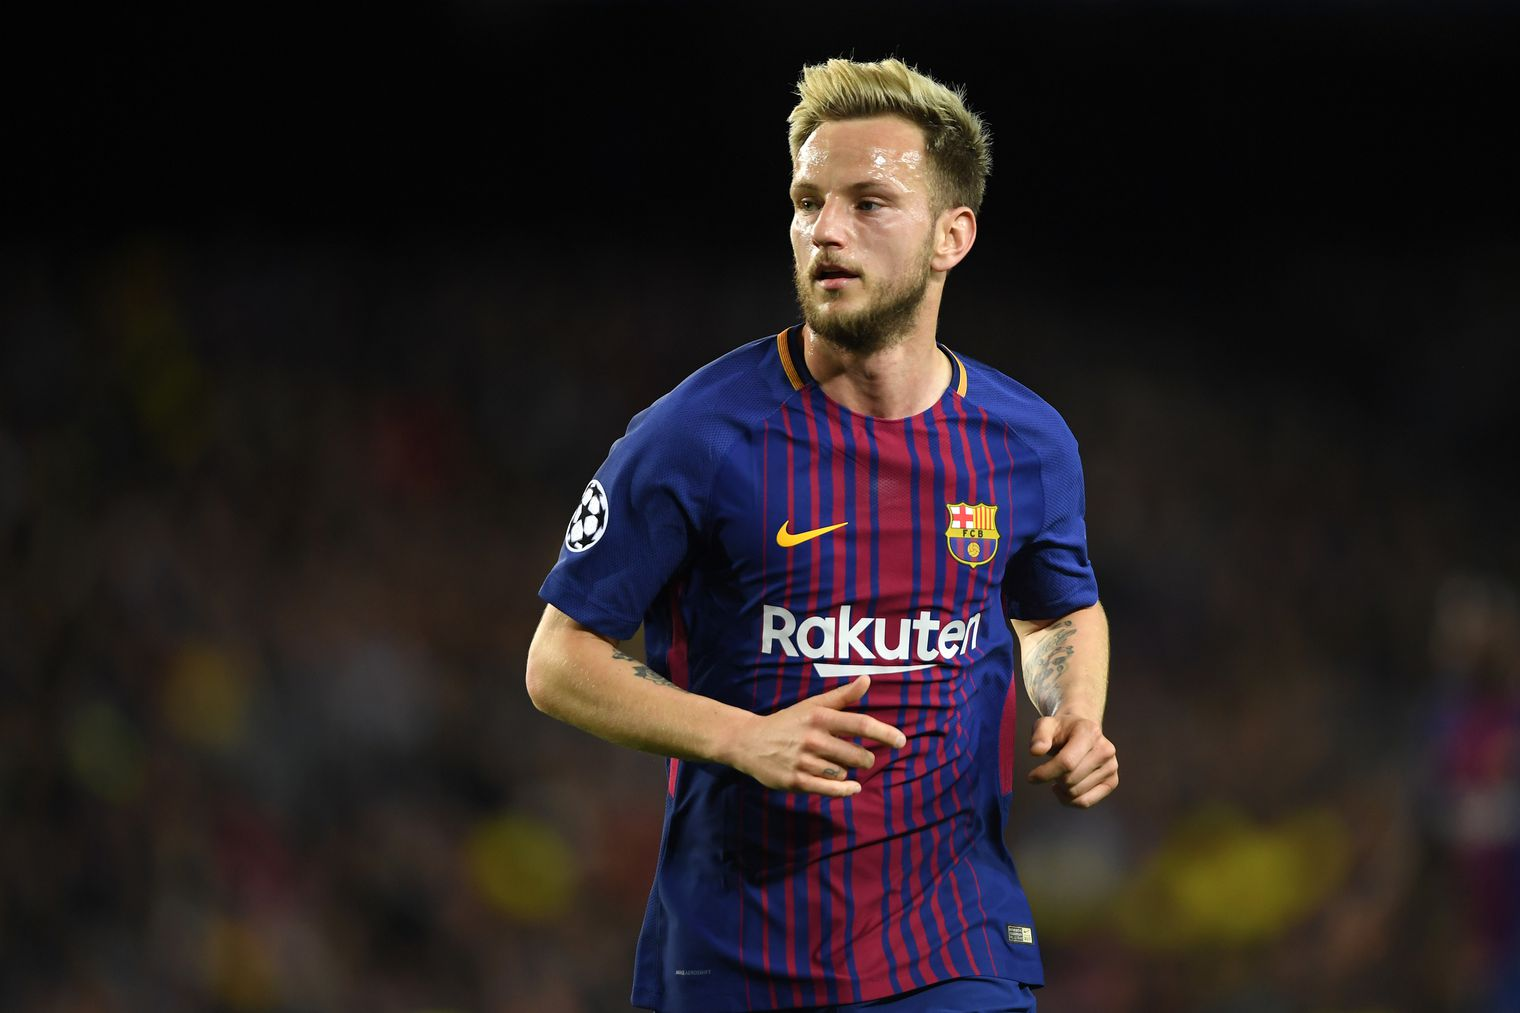 Ivan Rakitic joined Barcelona from Sevilla